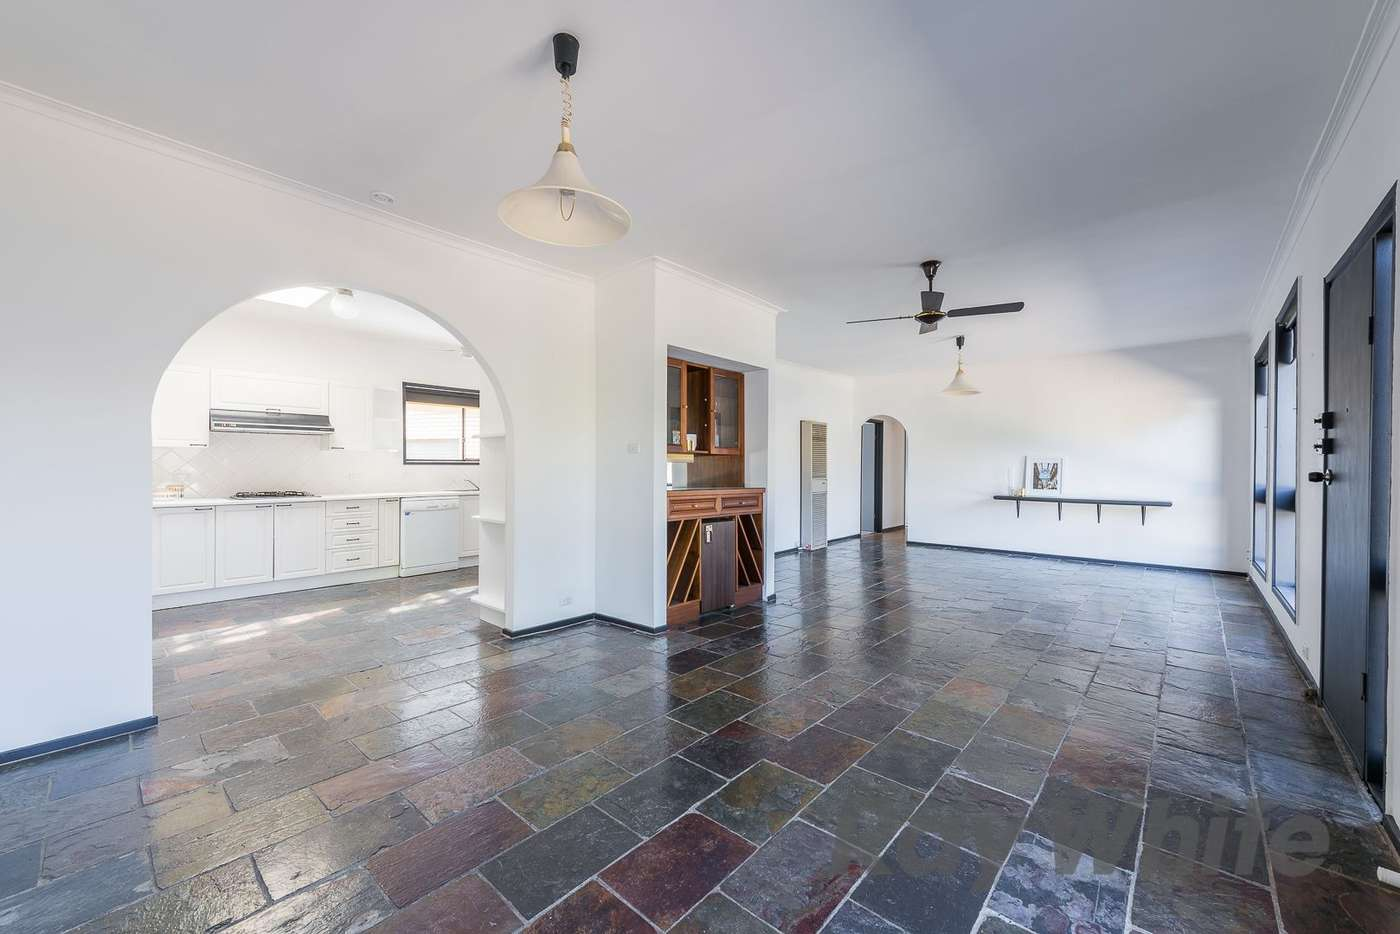 Main view of Homely house listing, 1 Waratah Avenue, Mordialloc VIC 3195